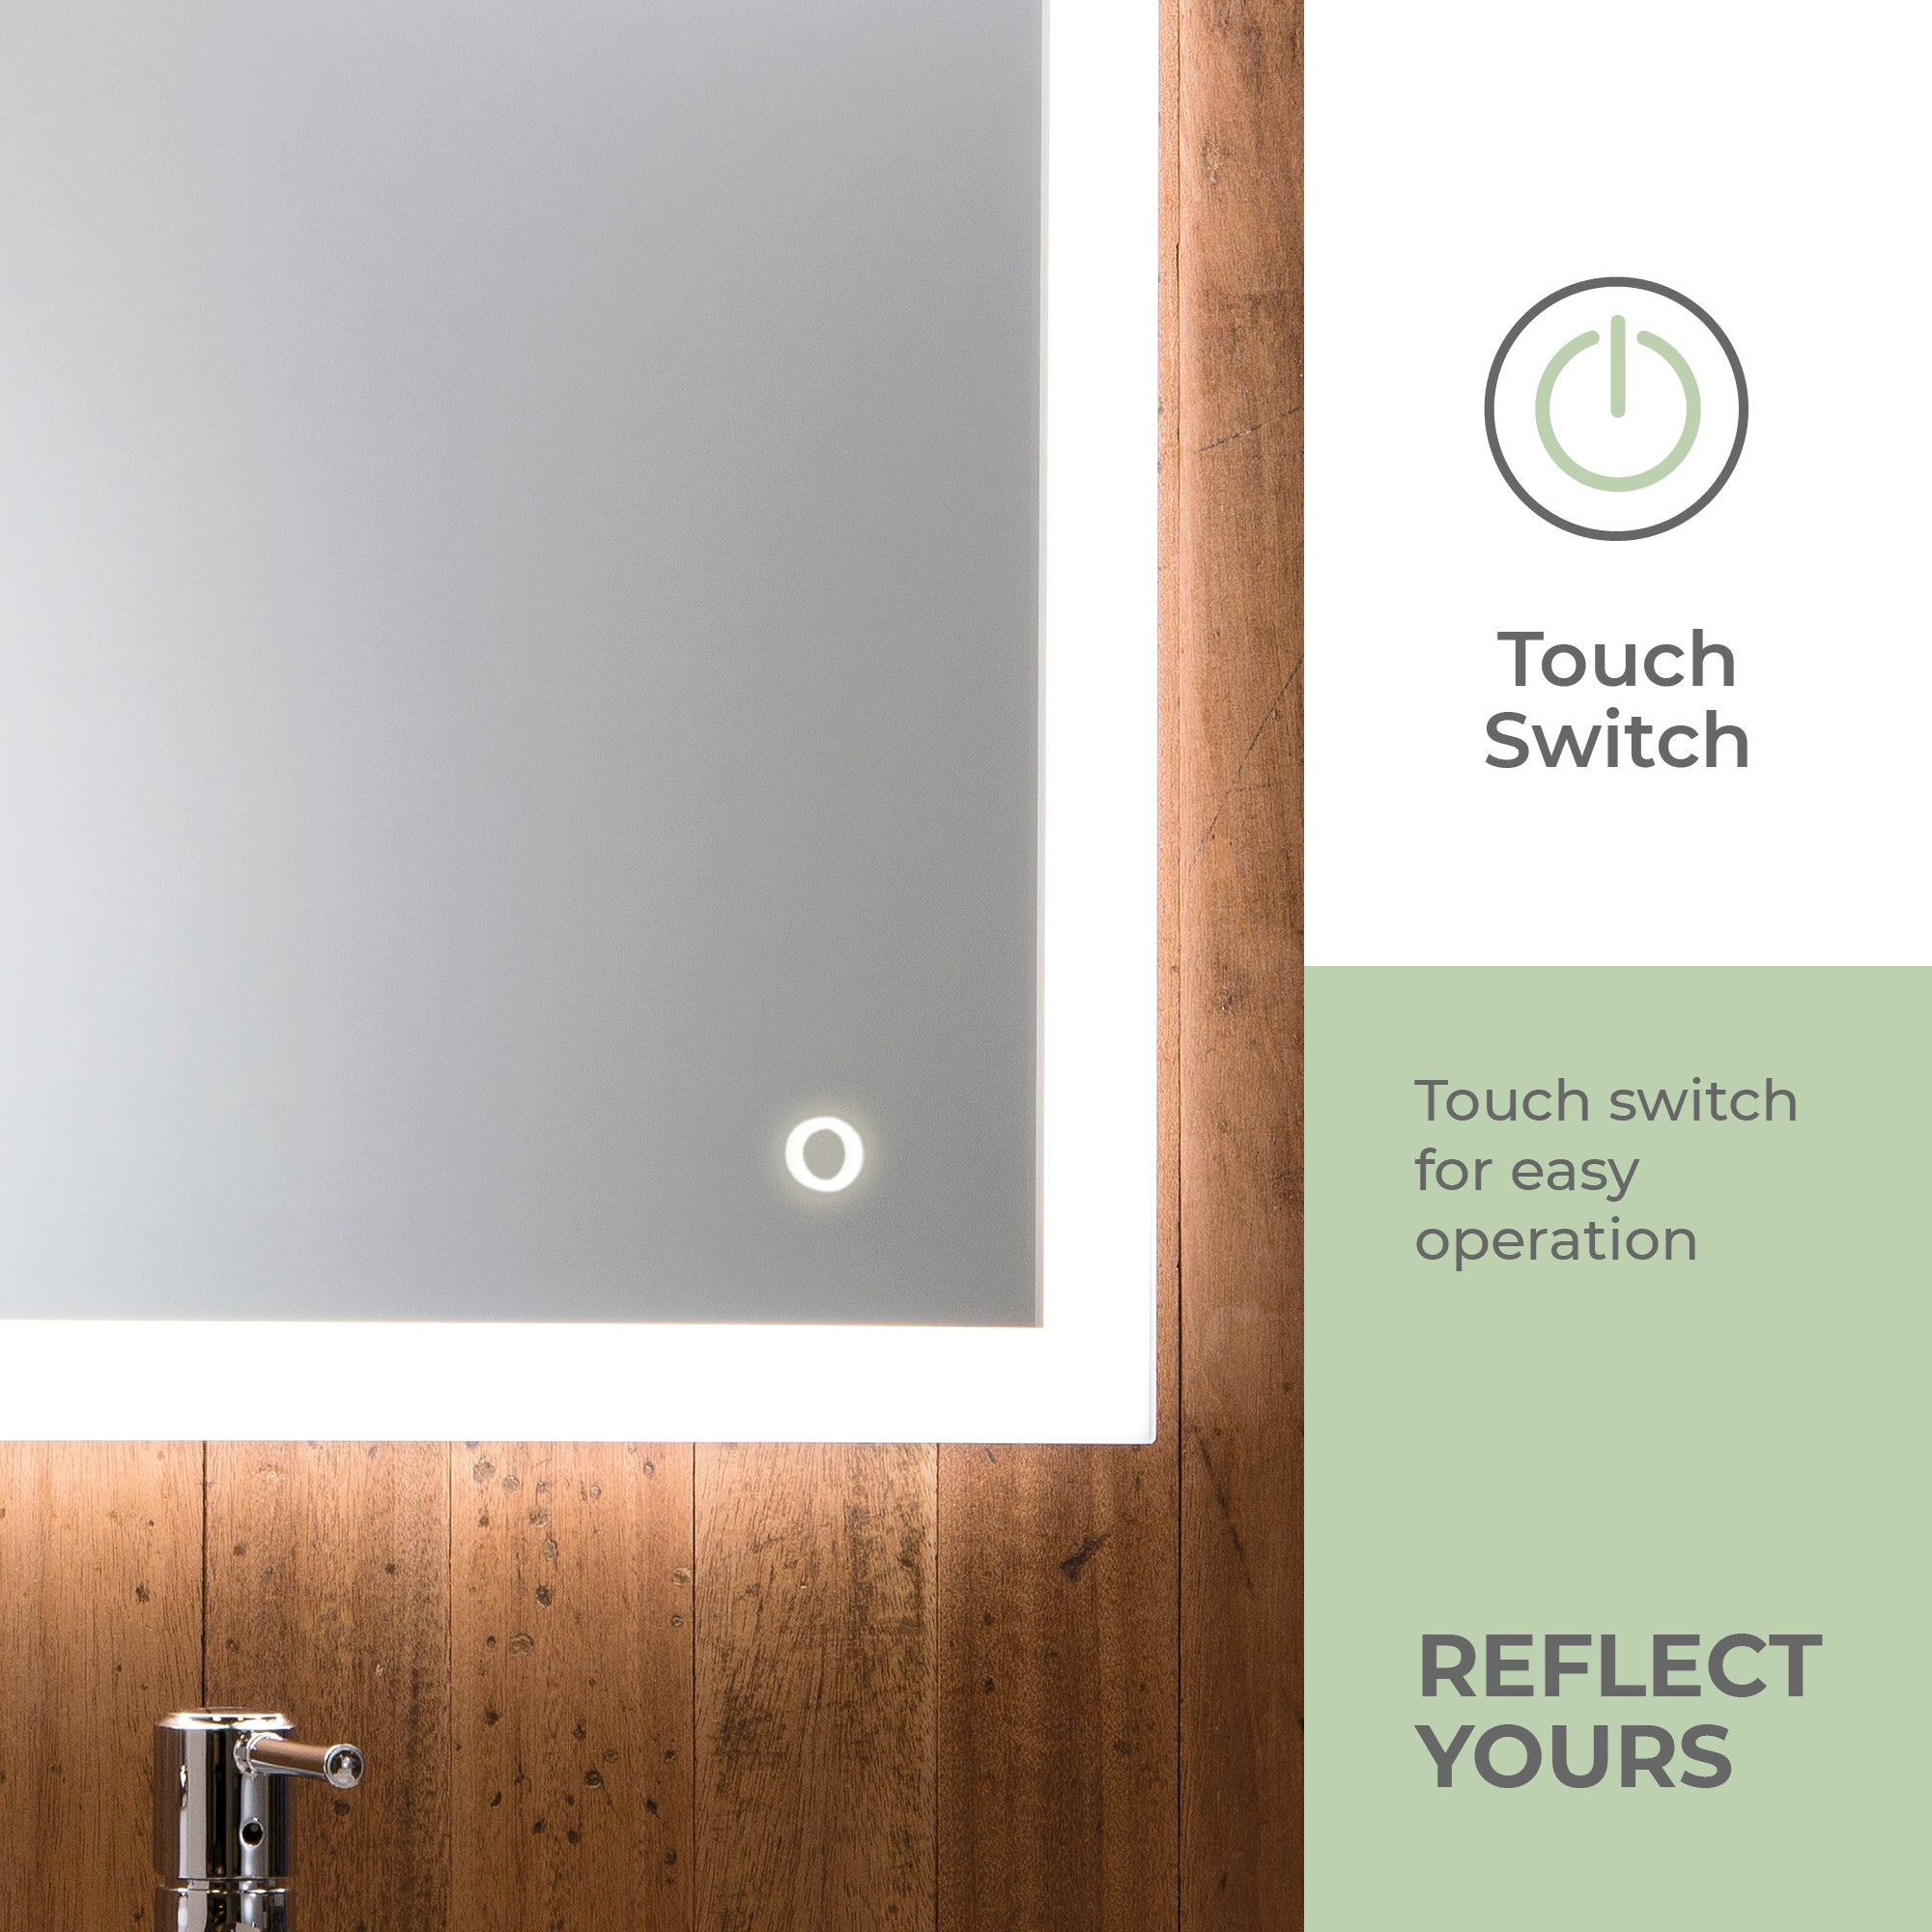 LED Illuminated Bathroom Mirror YJ2538F Size-70HX50WX5.5Dcm